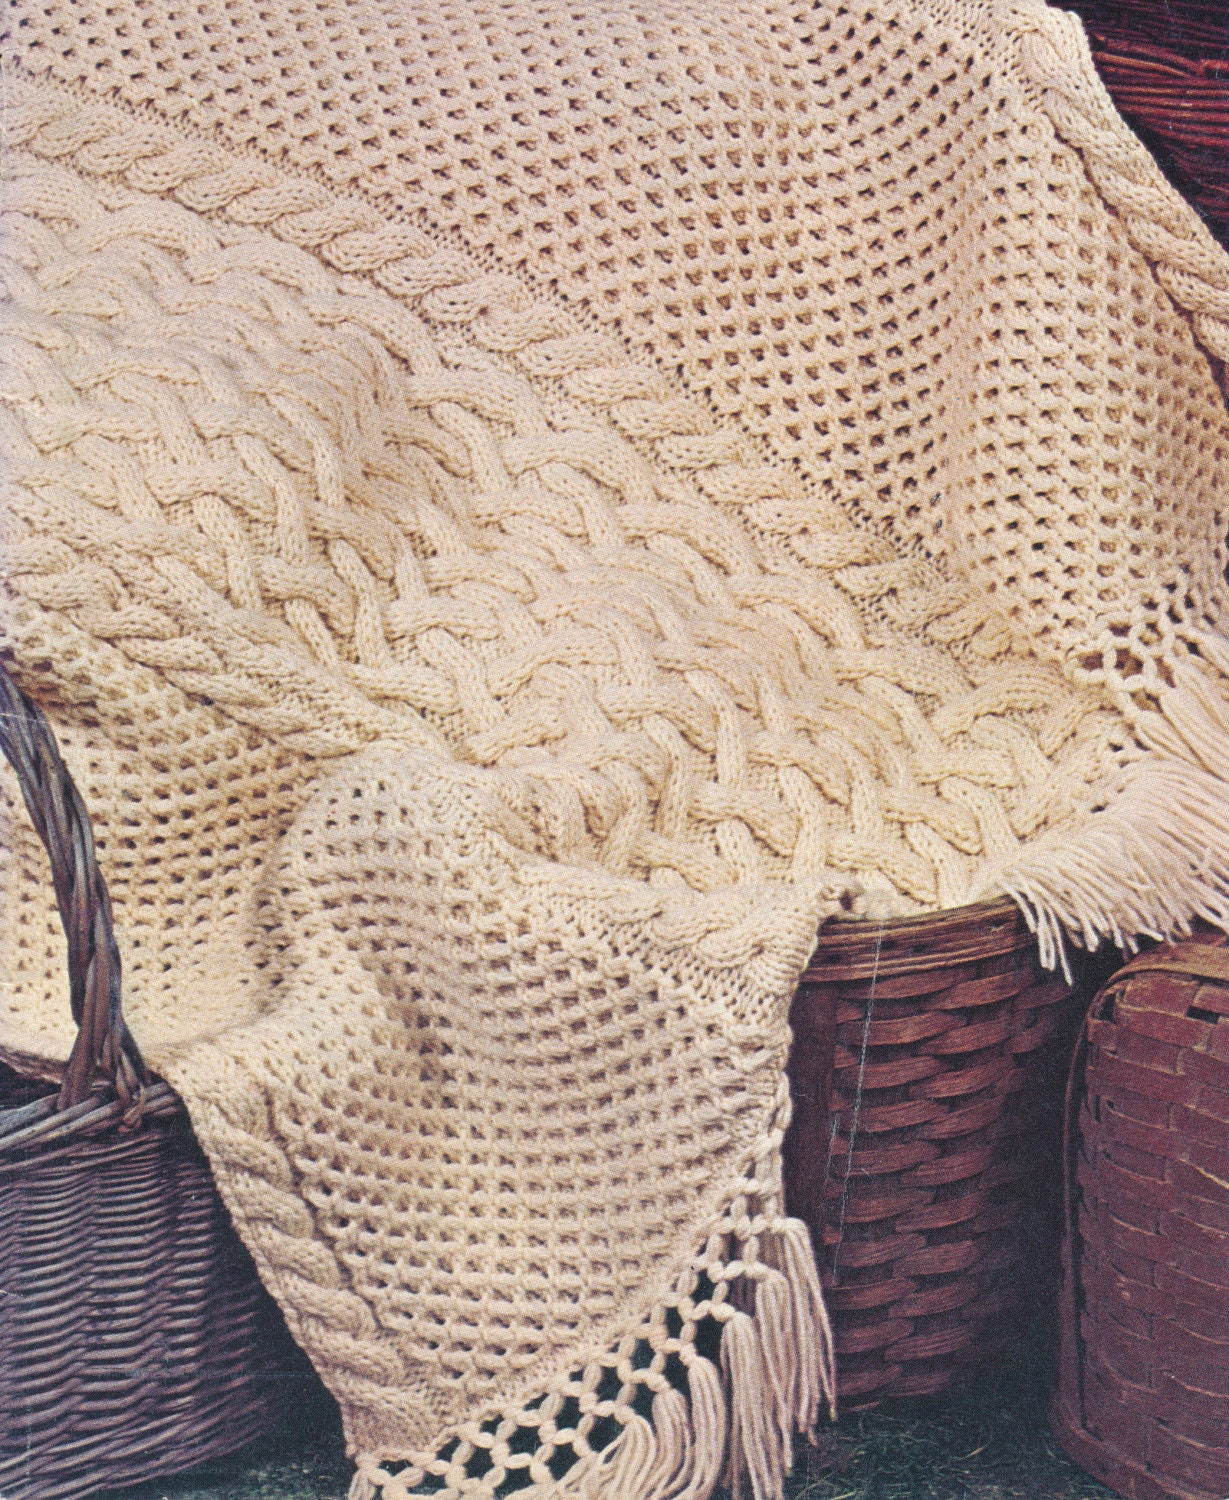 Knit Cable Afghan Pattern : Super Cozy Knit Cable and Lattice Afghan by CraftyPatternsForYou